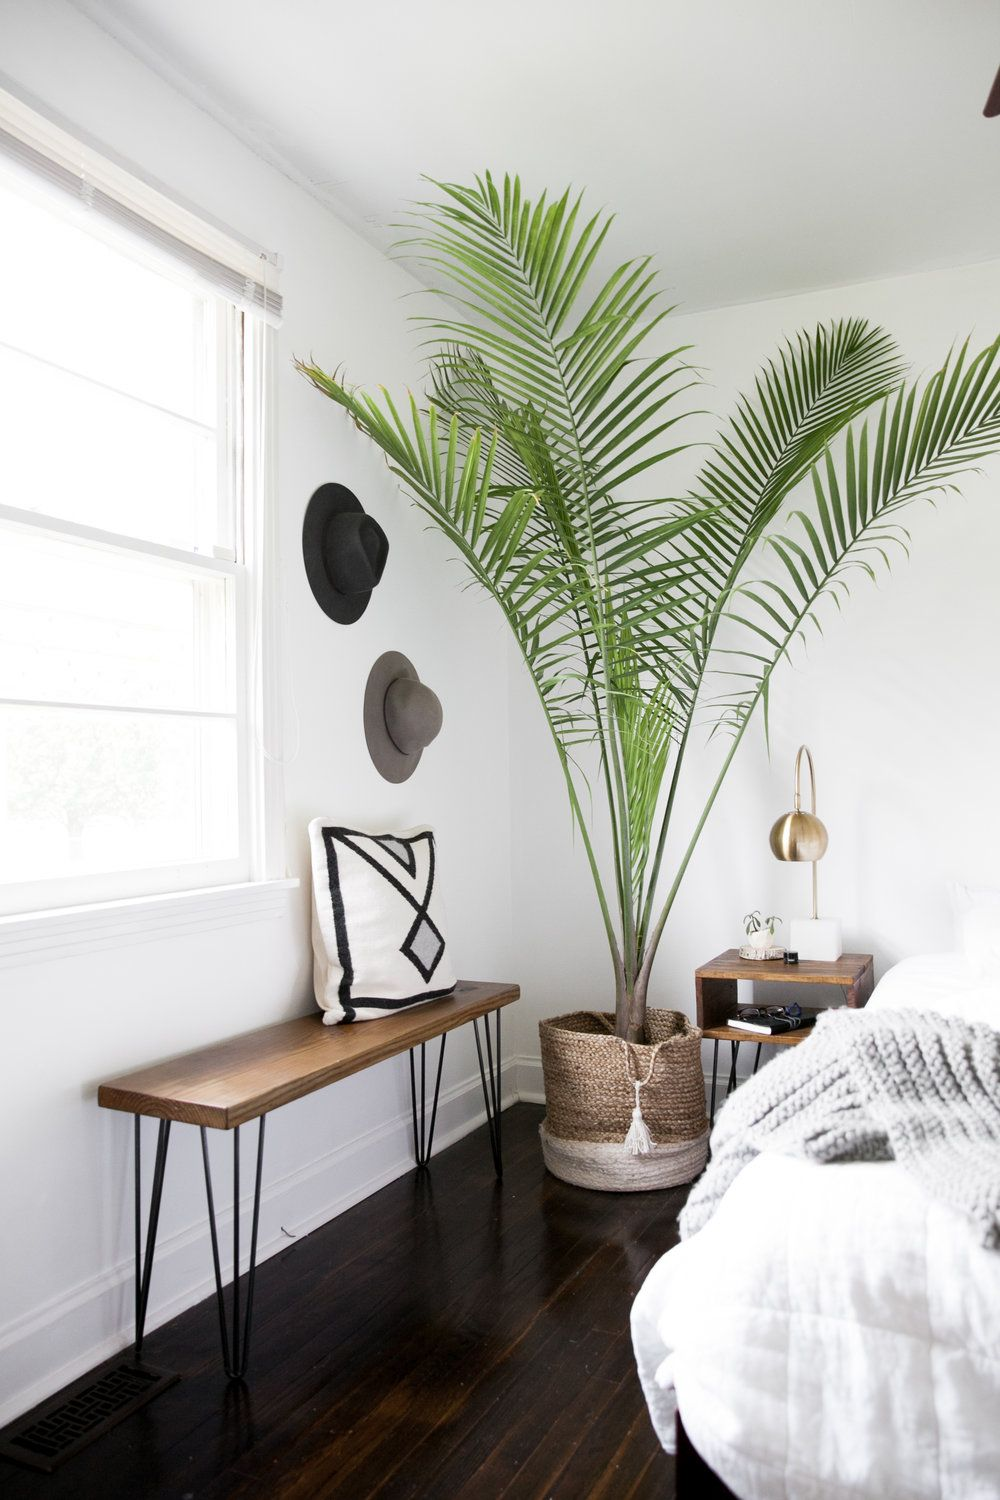 Bedroom Decorating with Plants